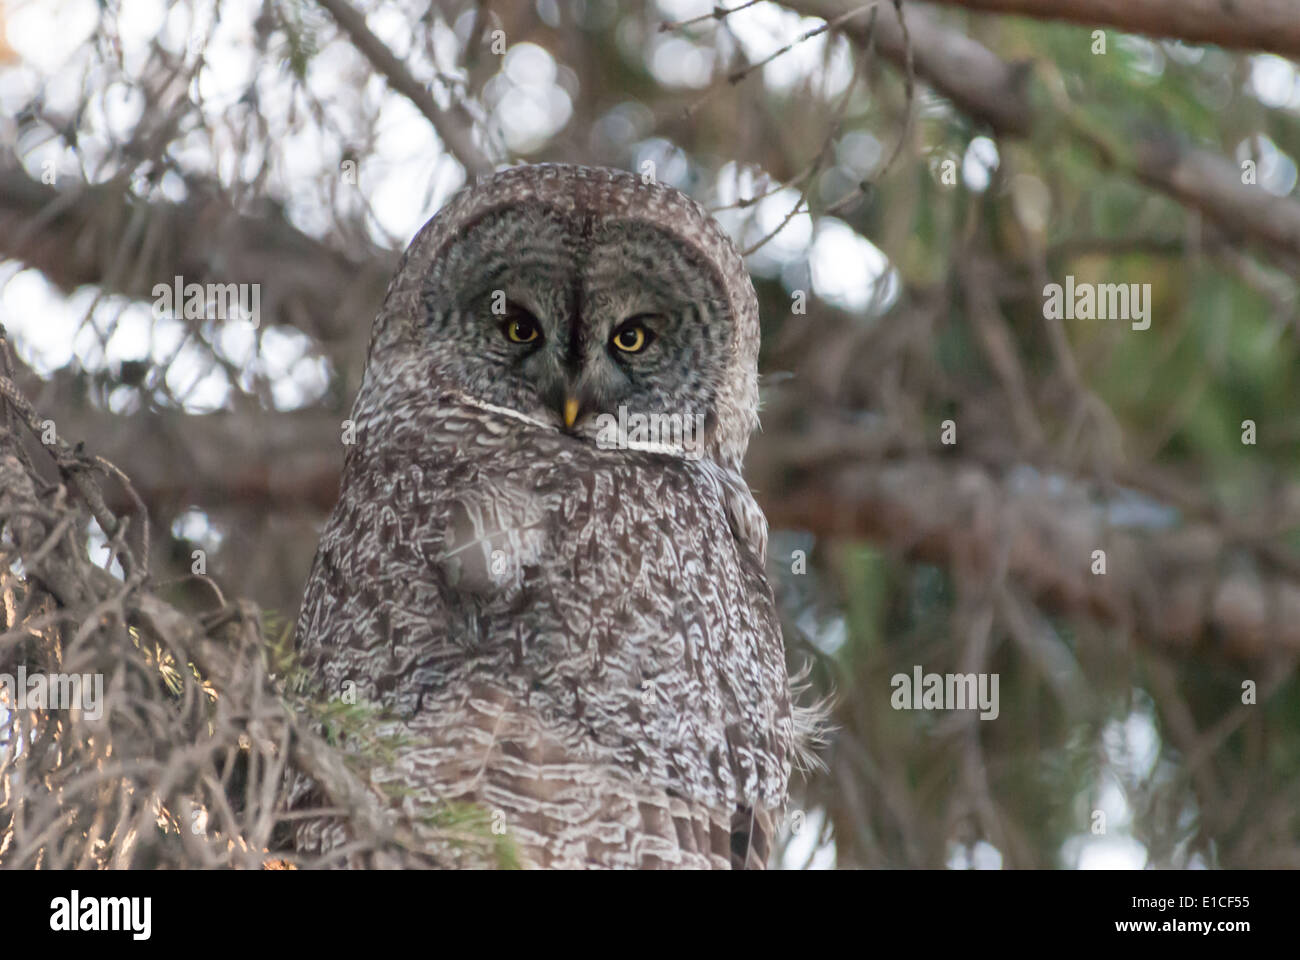 great-grey-owl-strix-nebulosa-sitting-in